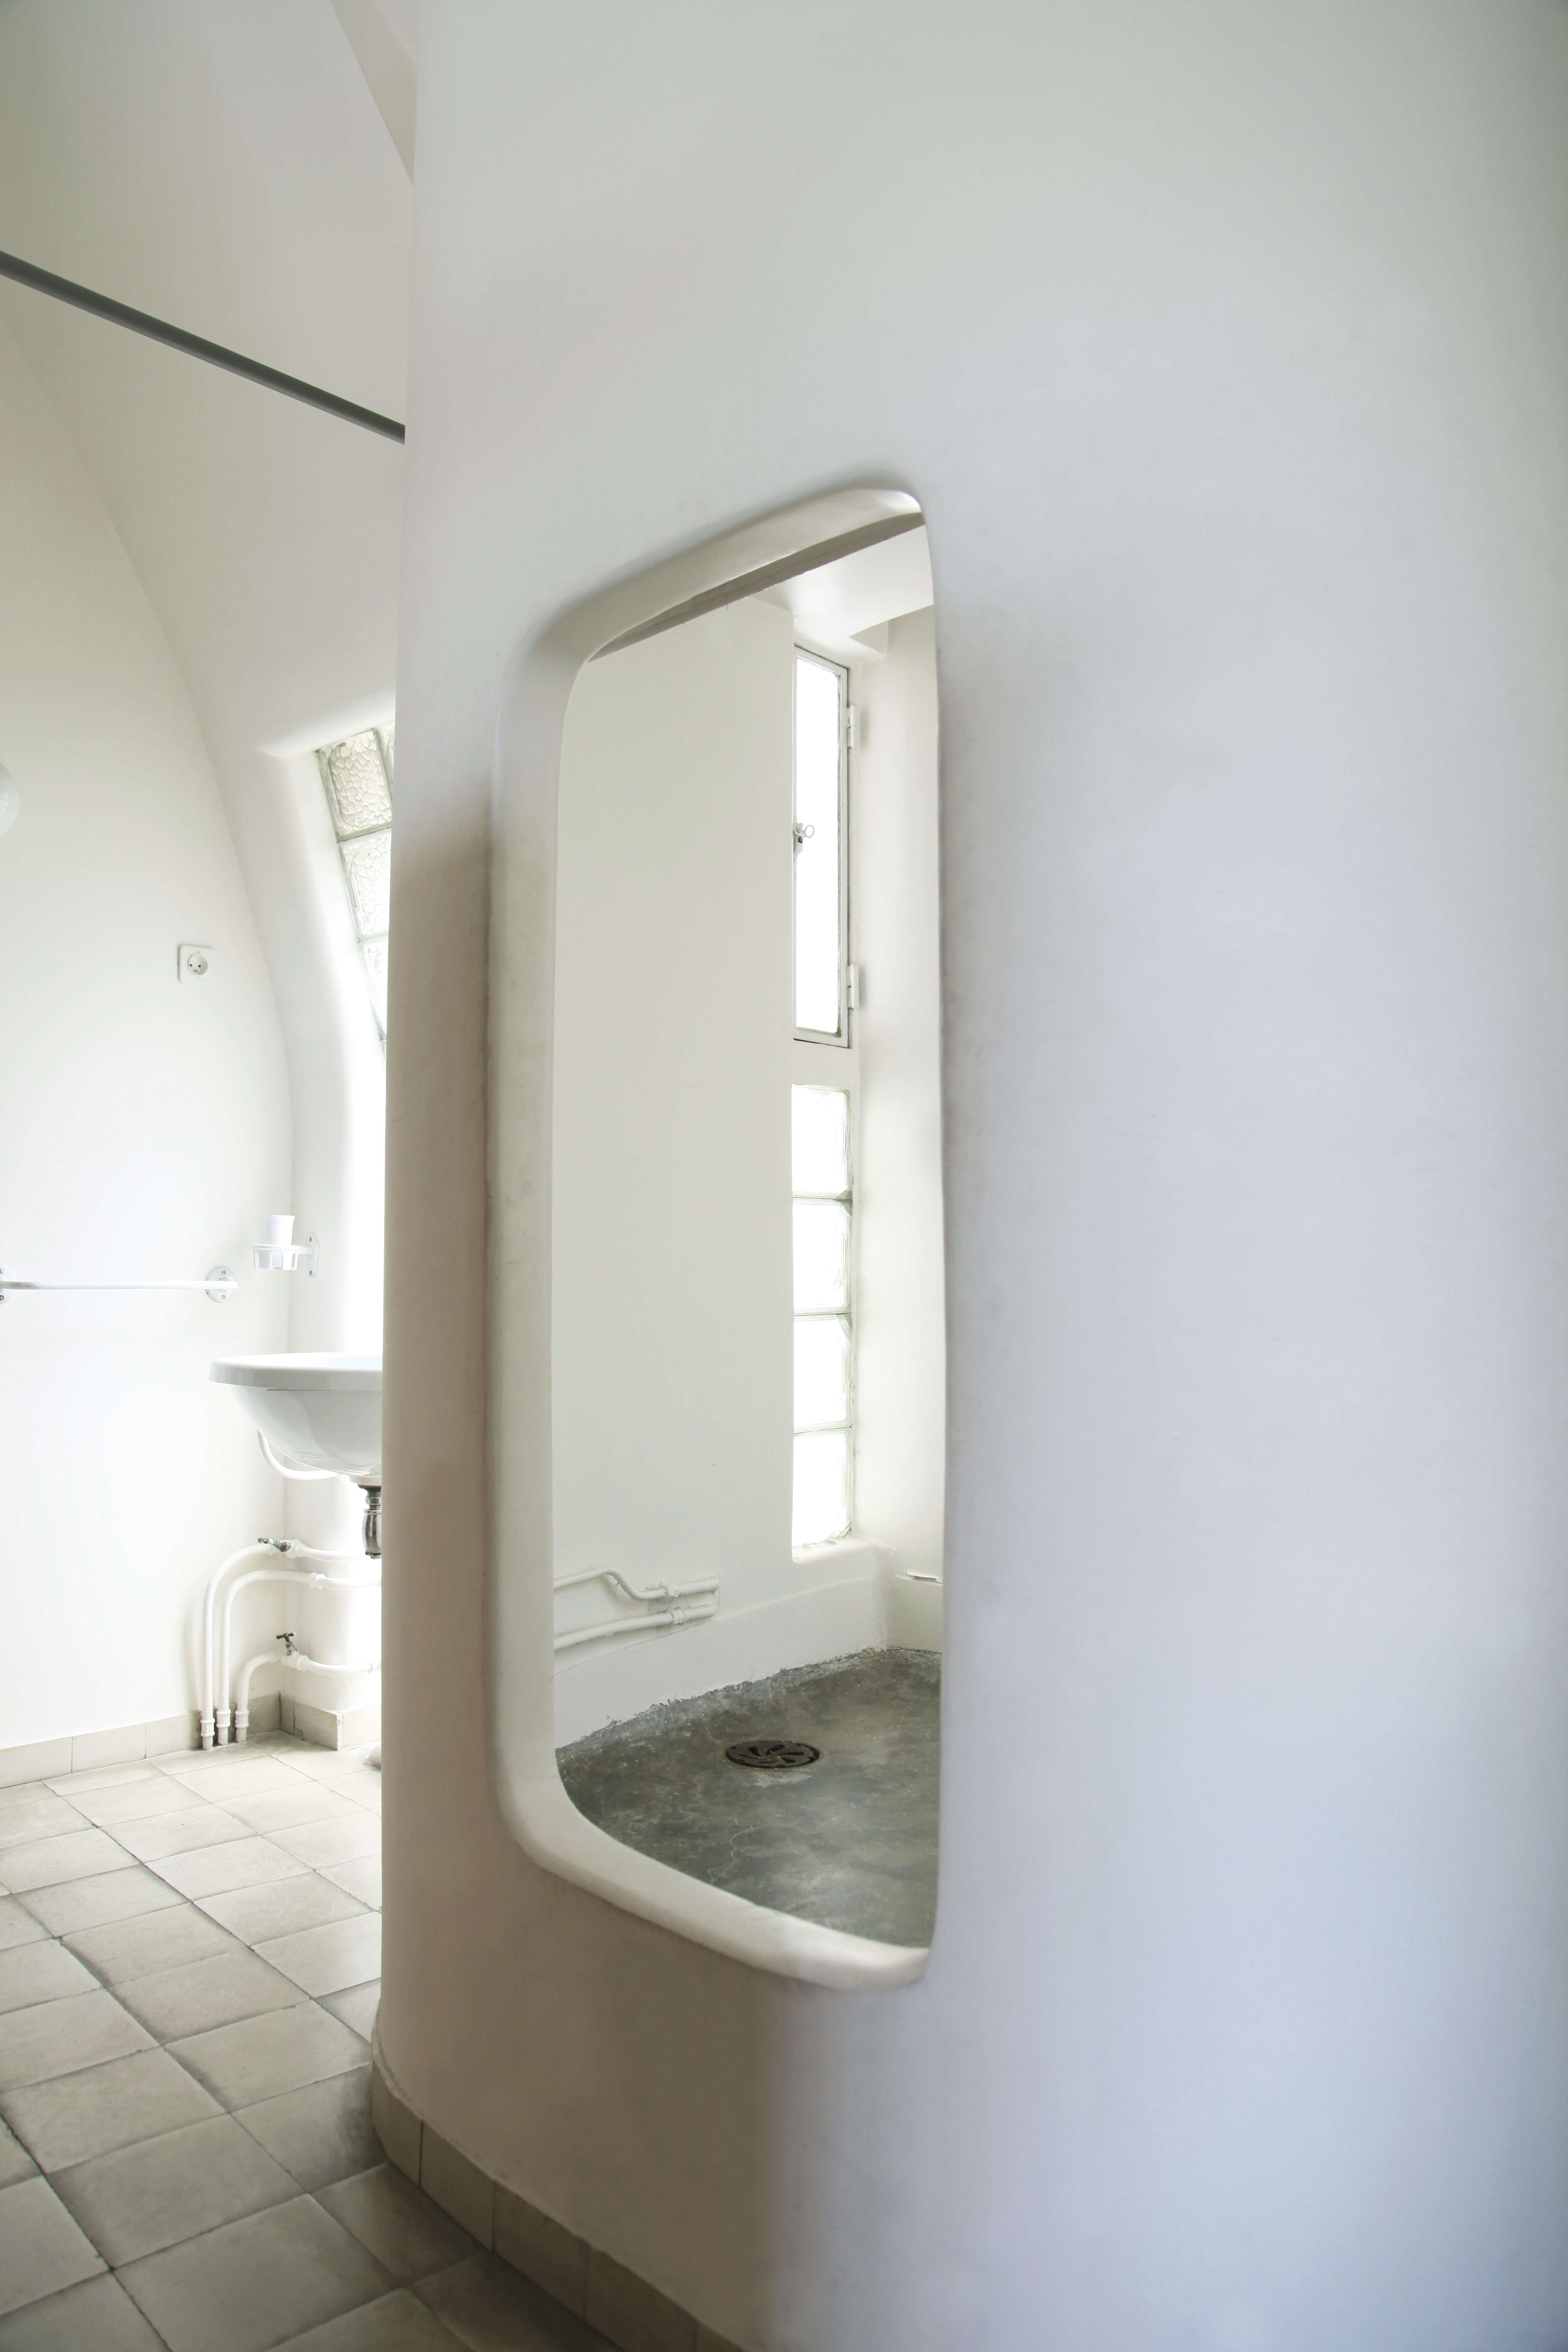 trend alert 13 sculptural baths and showers remodelista photograph by matthew williams from remodelista a manual for the considered home see more of the bath in world s tiniest spa bath a grecian inspired